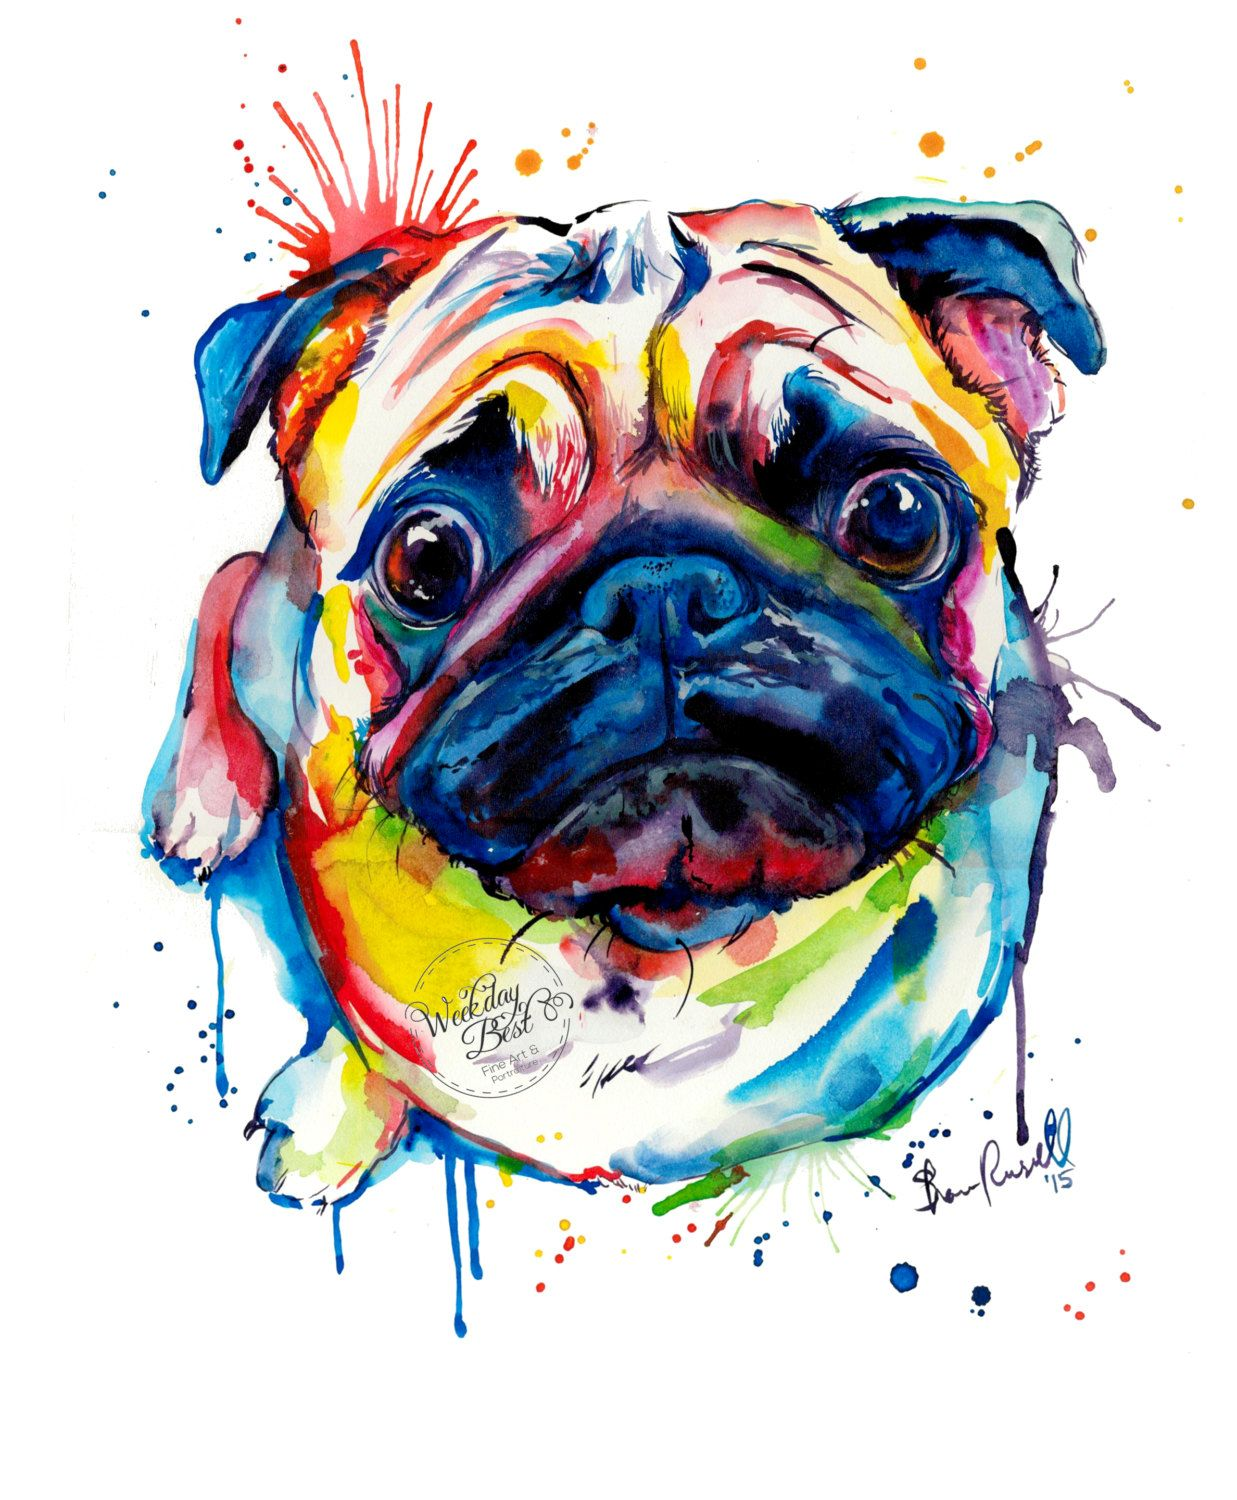 Colorful Pug Art Print - Print of my Original Watercolor Painting ...